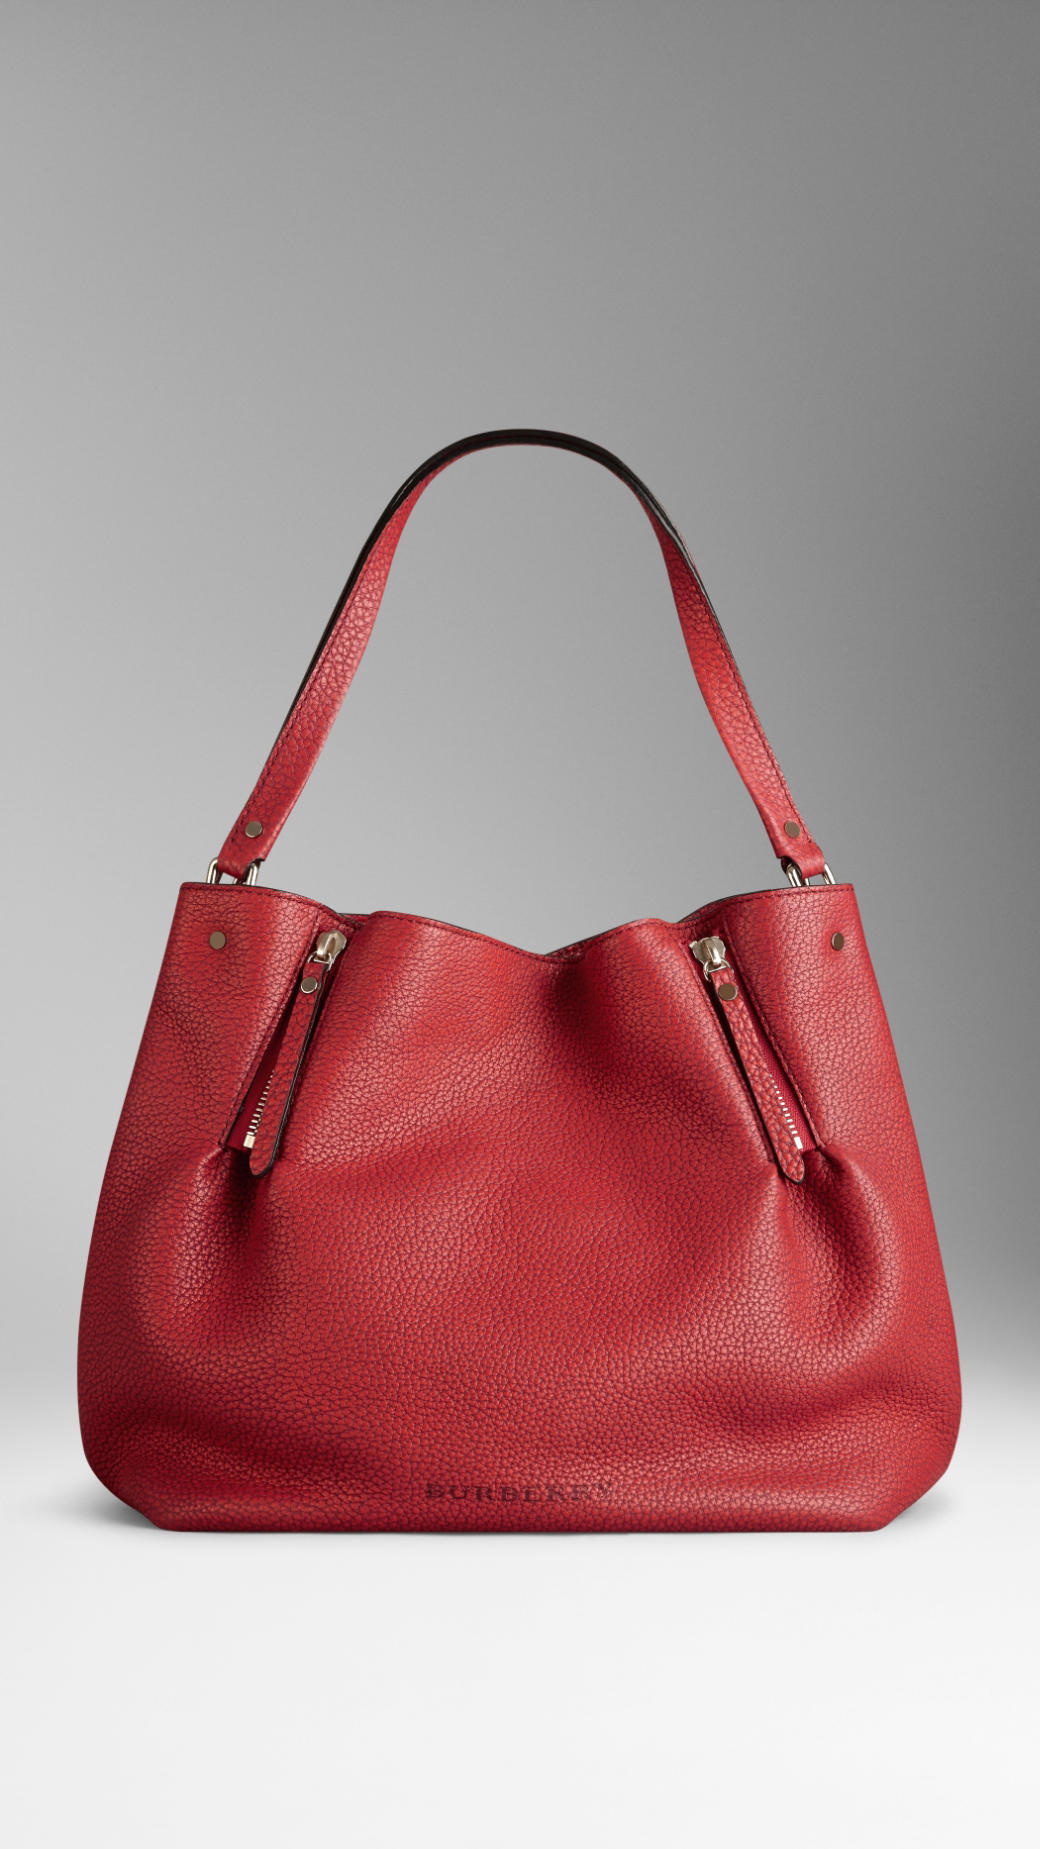 921716e1ce5e Burberry Red Purses Best Purse Image Ccdbb. Gallery. Lyst Burberry  Canterbury Tote ...